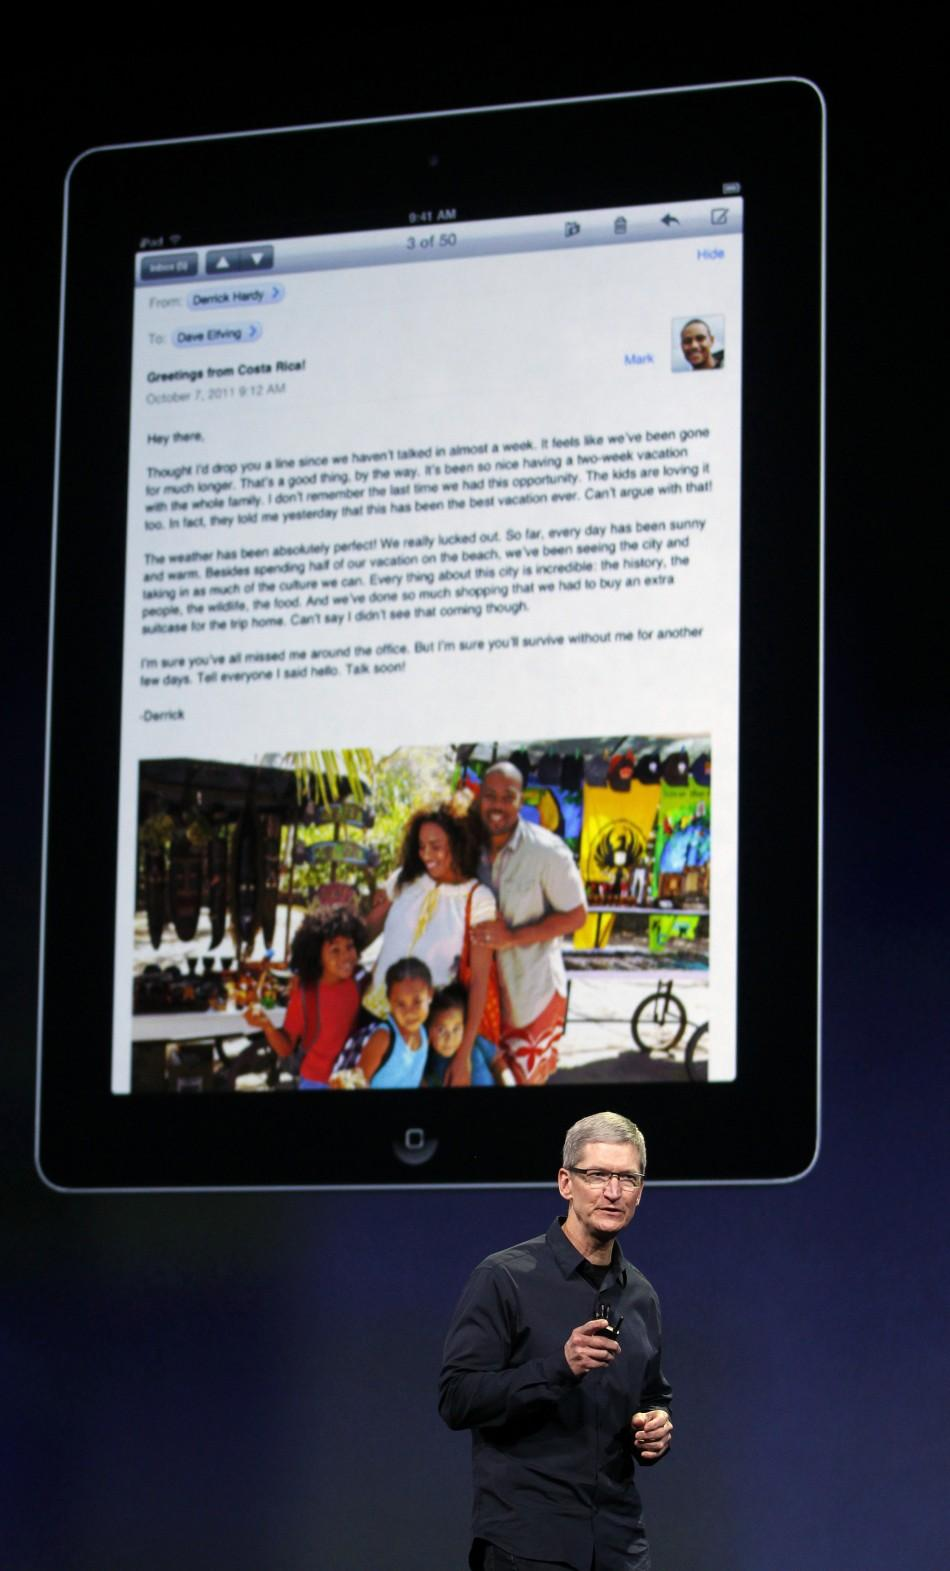 Apple CEO Cook speaks during an Apple event as an image of the old iPad is projected on the screen behind him in San Francisco